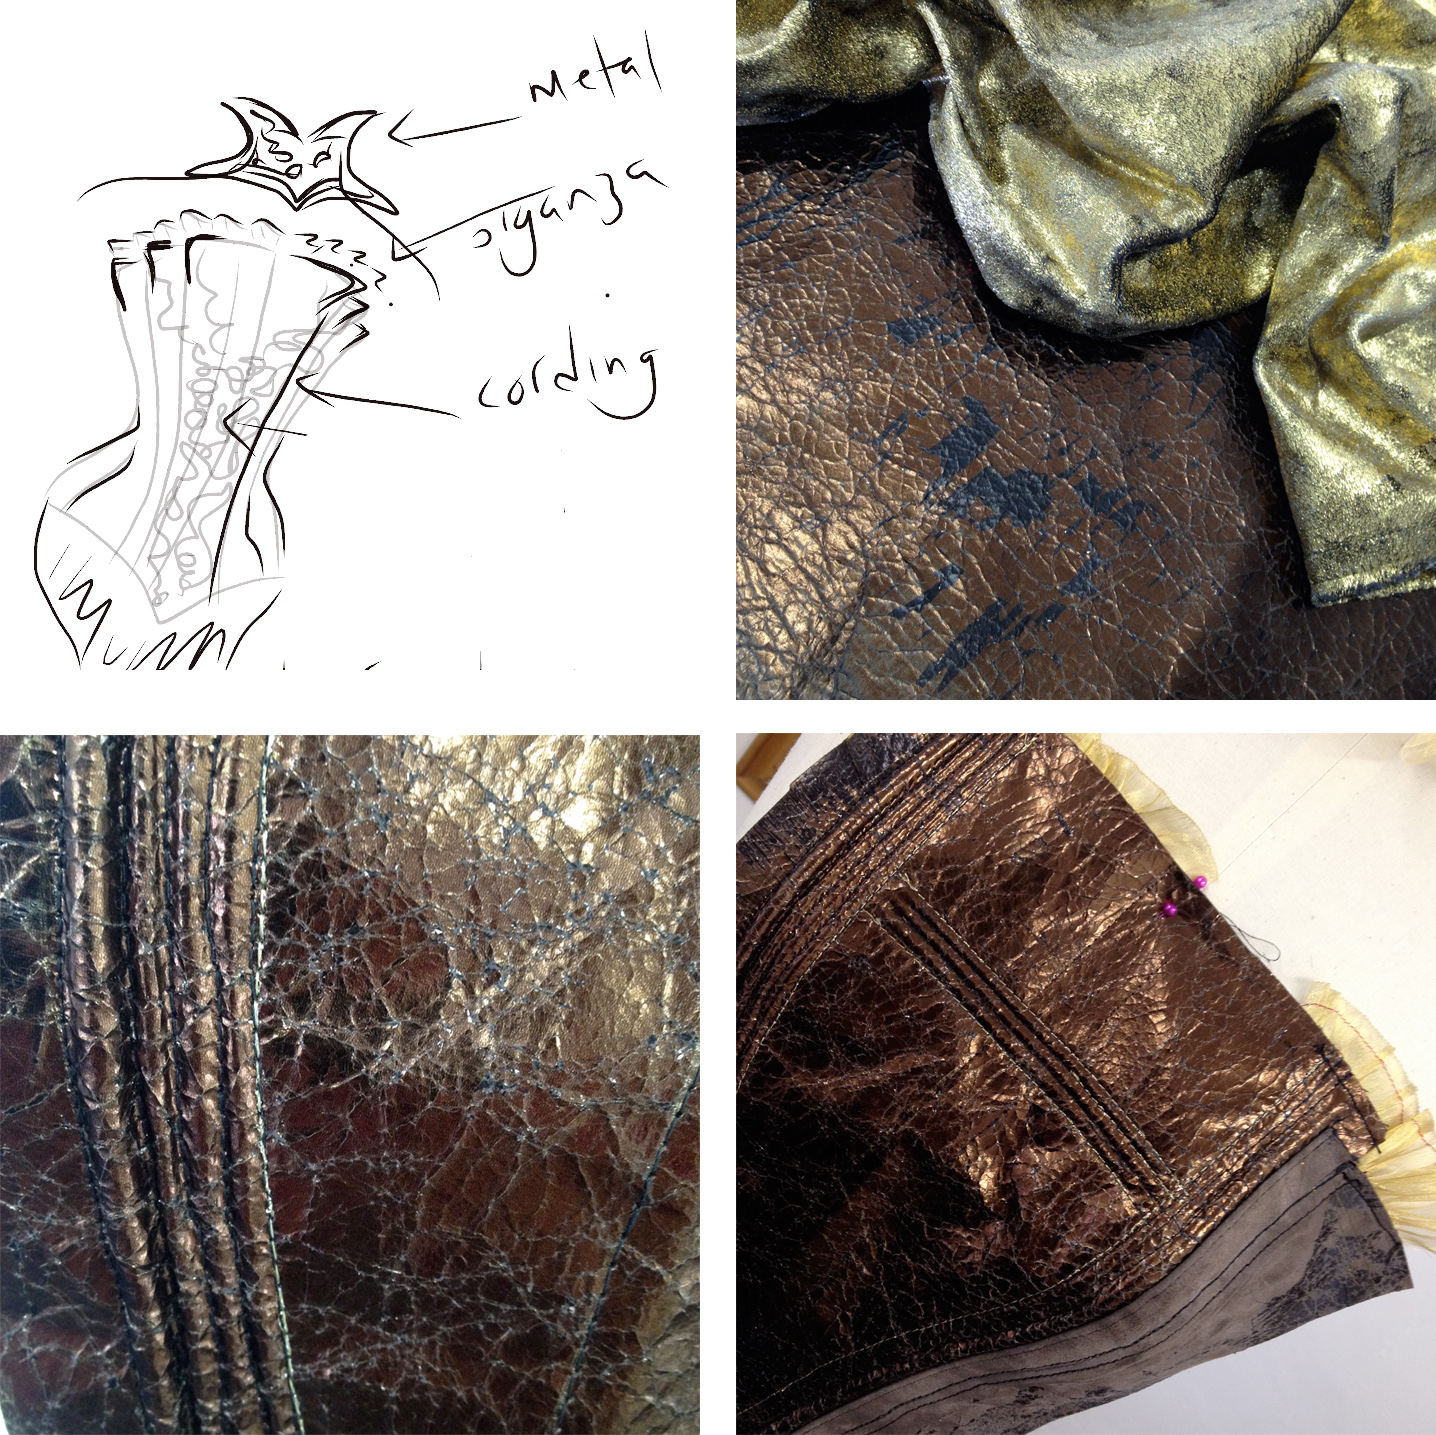 The initial sketch is not really like the final design - there were 'pages' symbolised by a stepped top edge and 'golden parchment' symbolised by an organza ribbon trim... this skitch is very literal.  Also shown are close ups of the leather before it was painted, and test pieces with cording.